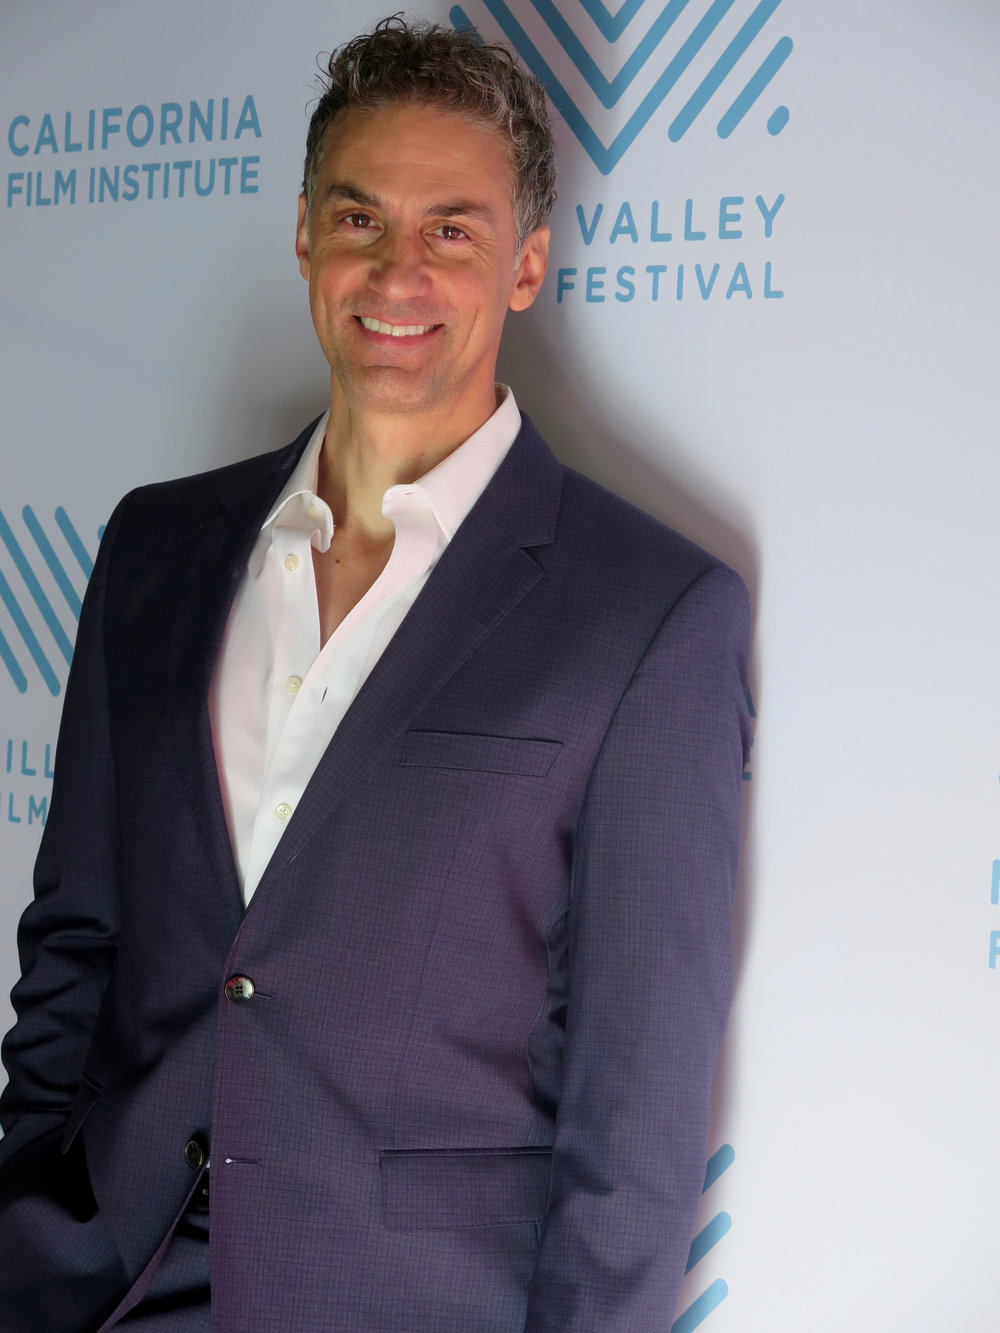 mvff red carpet2.jpg